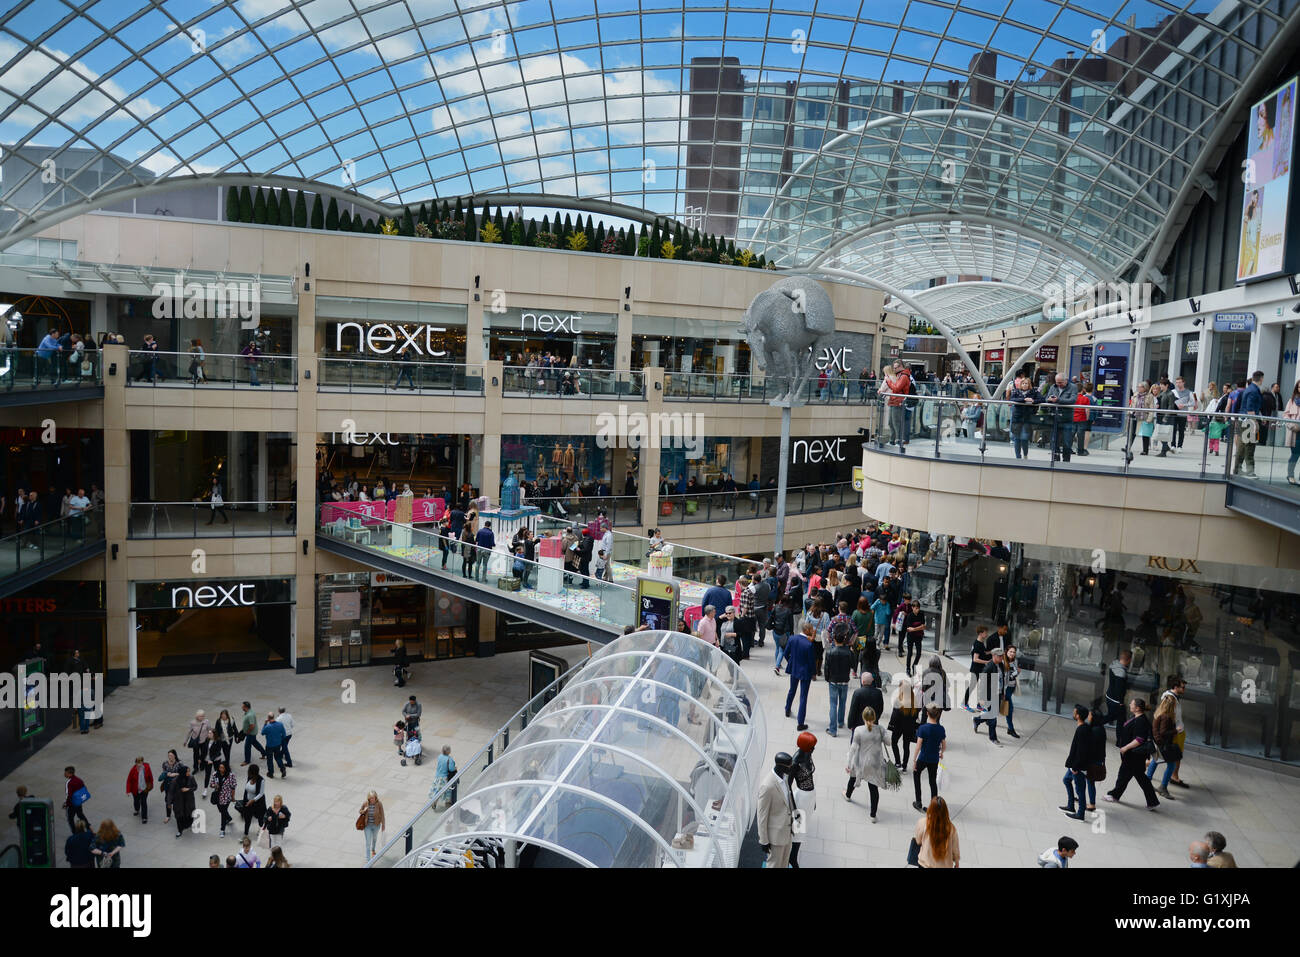 Trinity Leeds is the city's newest and biggest shopping and leisure destination with over 120 shops, cafes, bars, - Stock Image